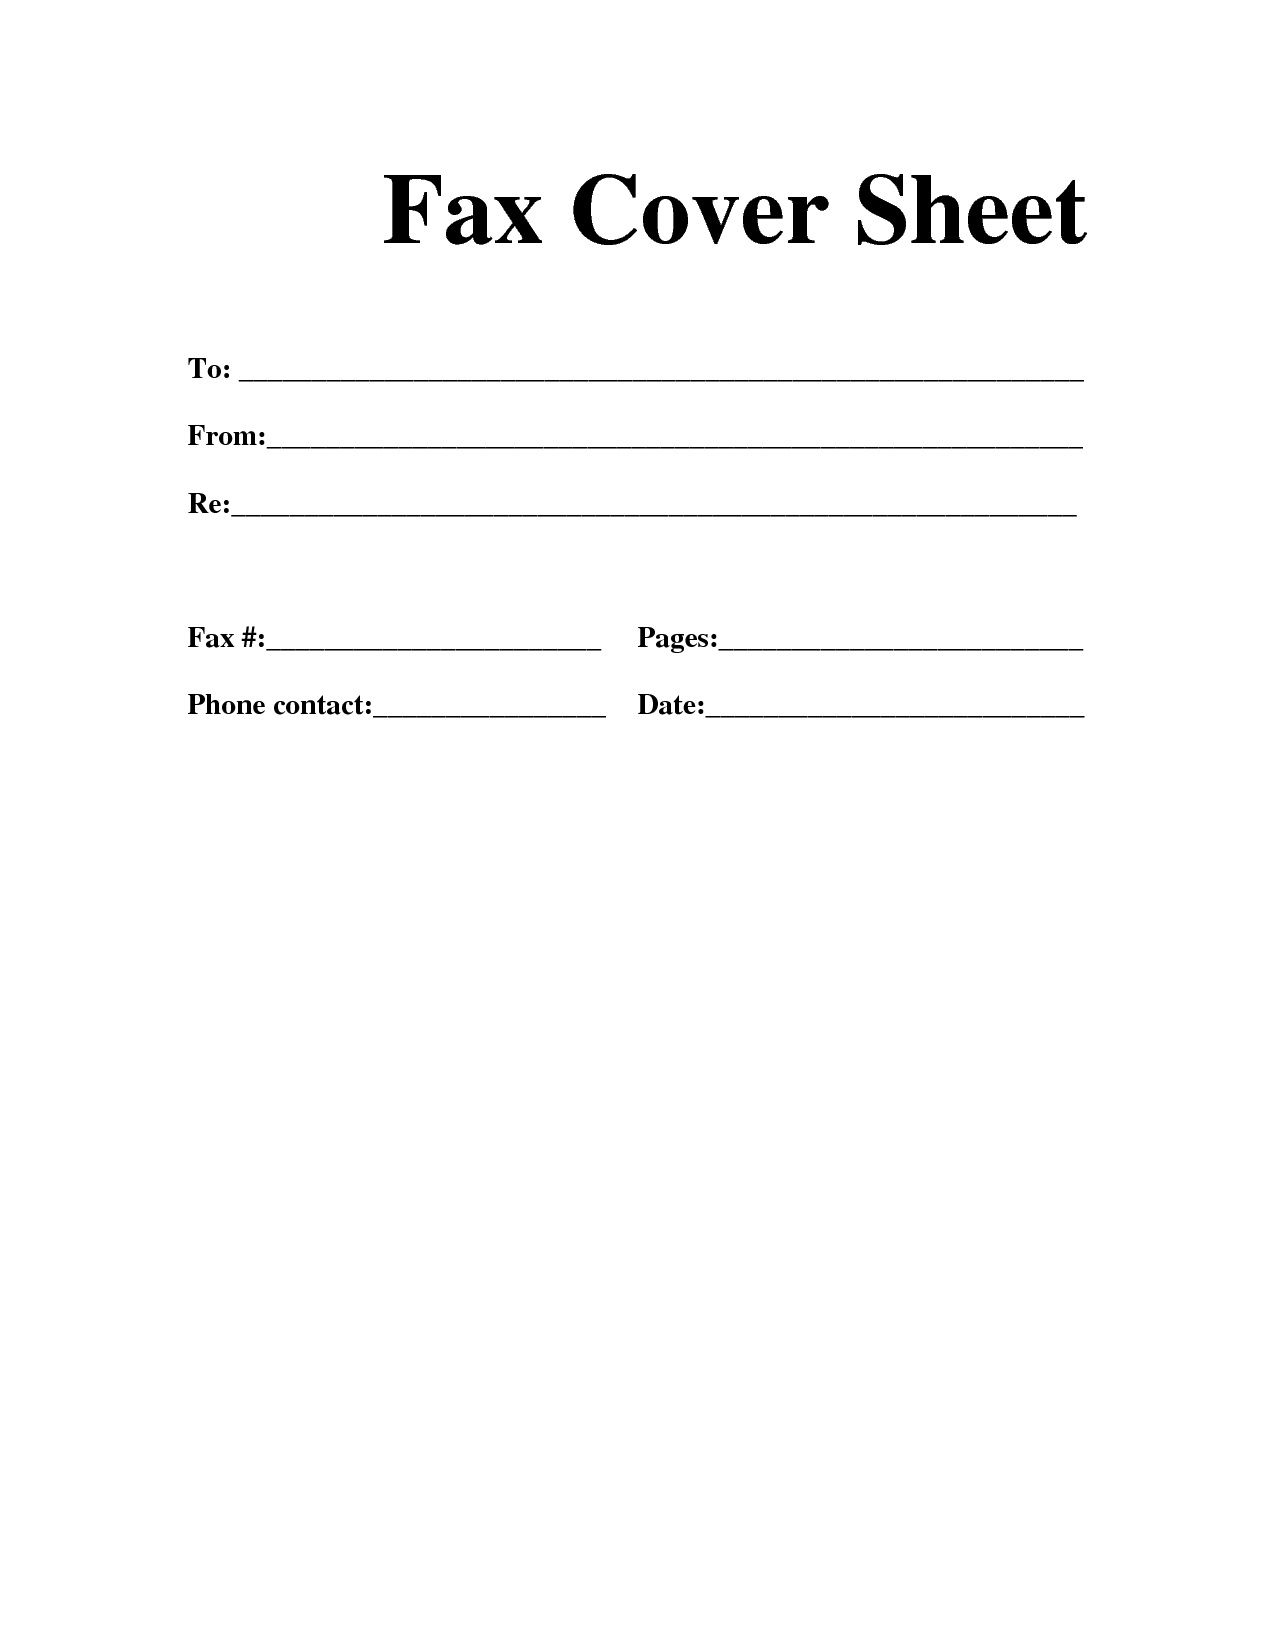 17 Best images about Fax Cover Letters on Pinterest | Maze, The ...